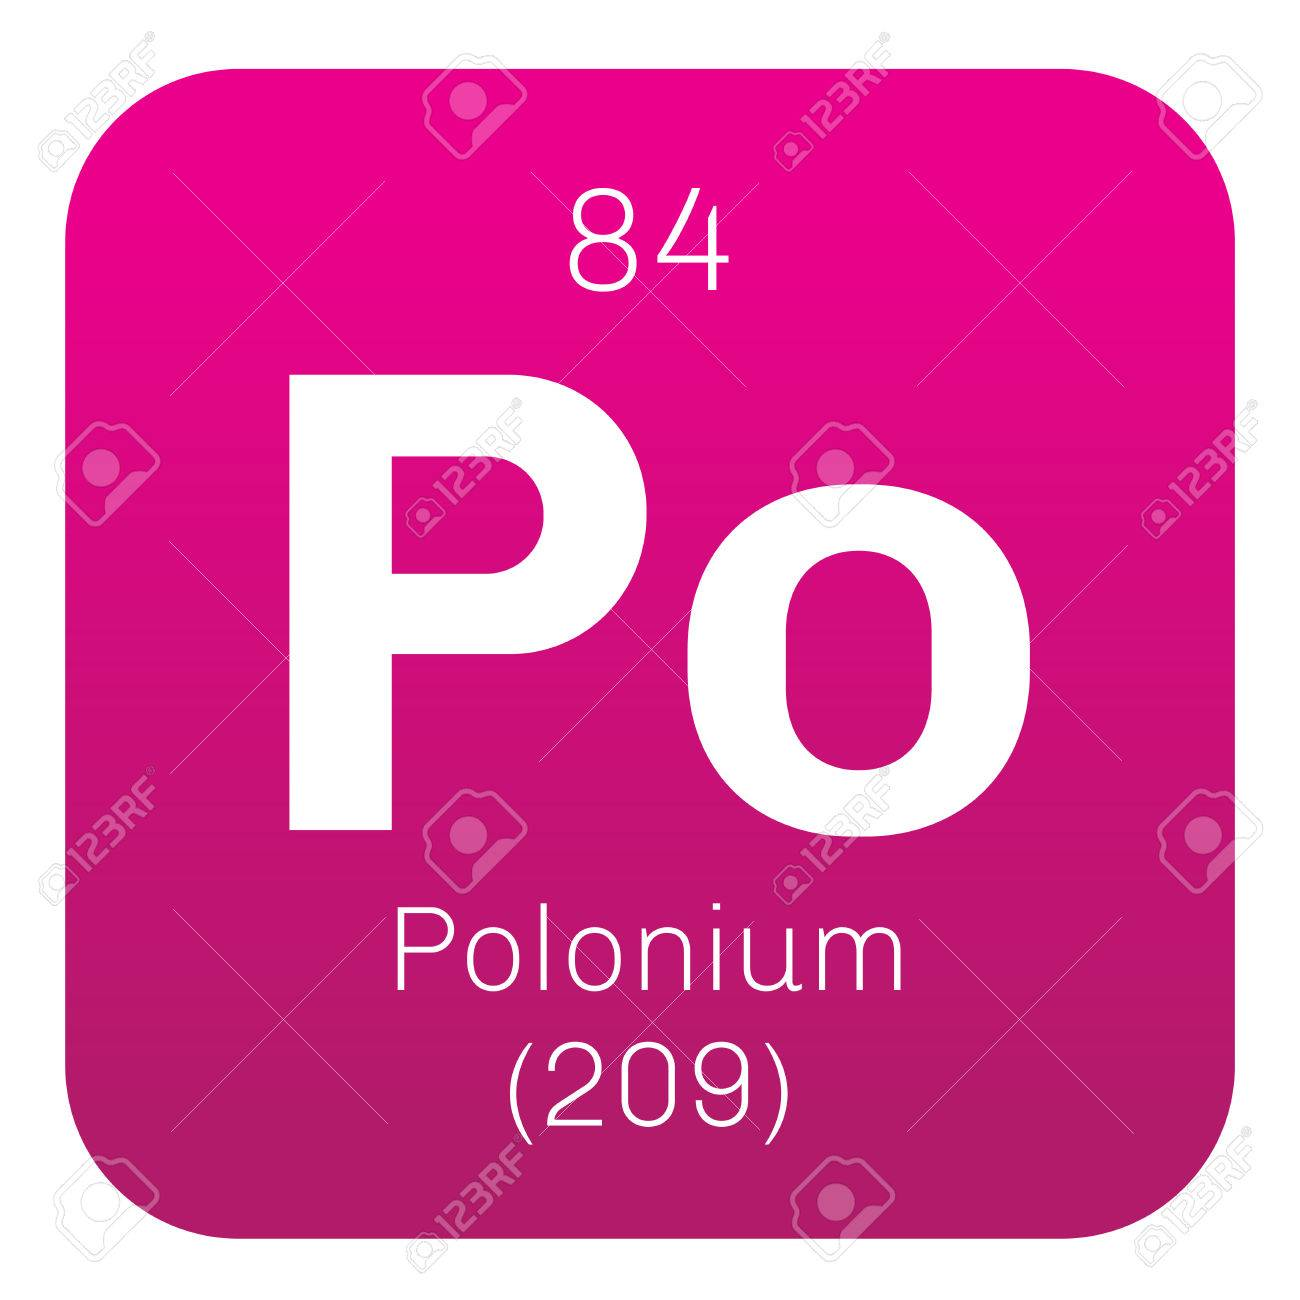 polonium chemical element rare and highly radioactive metal